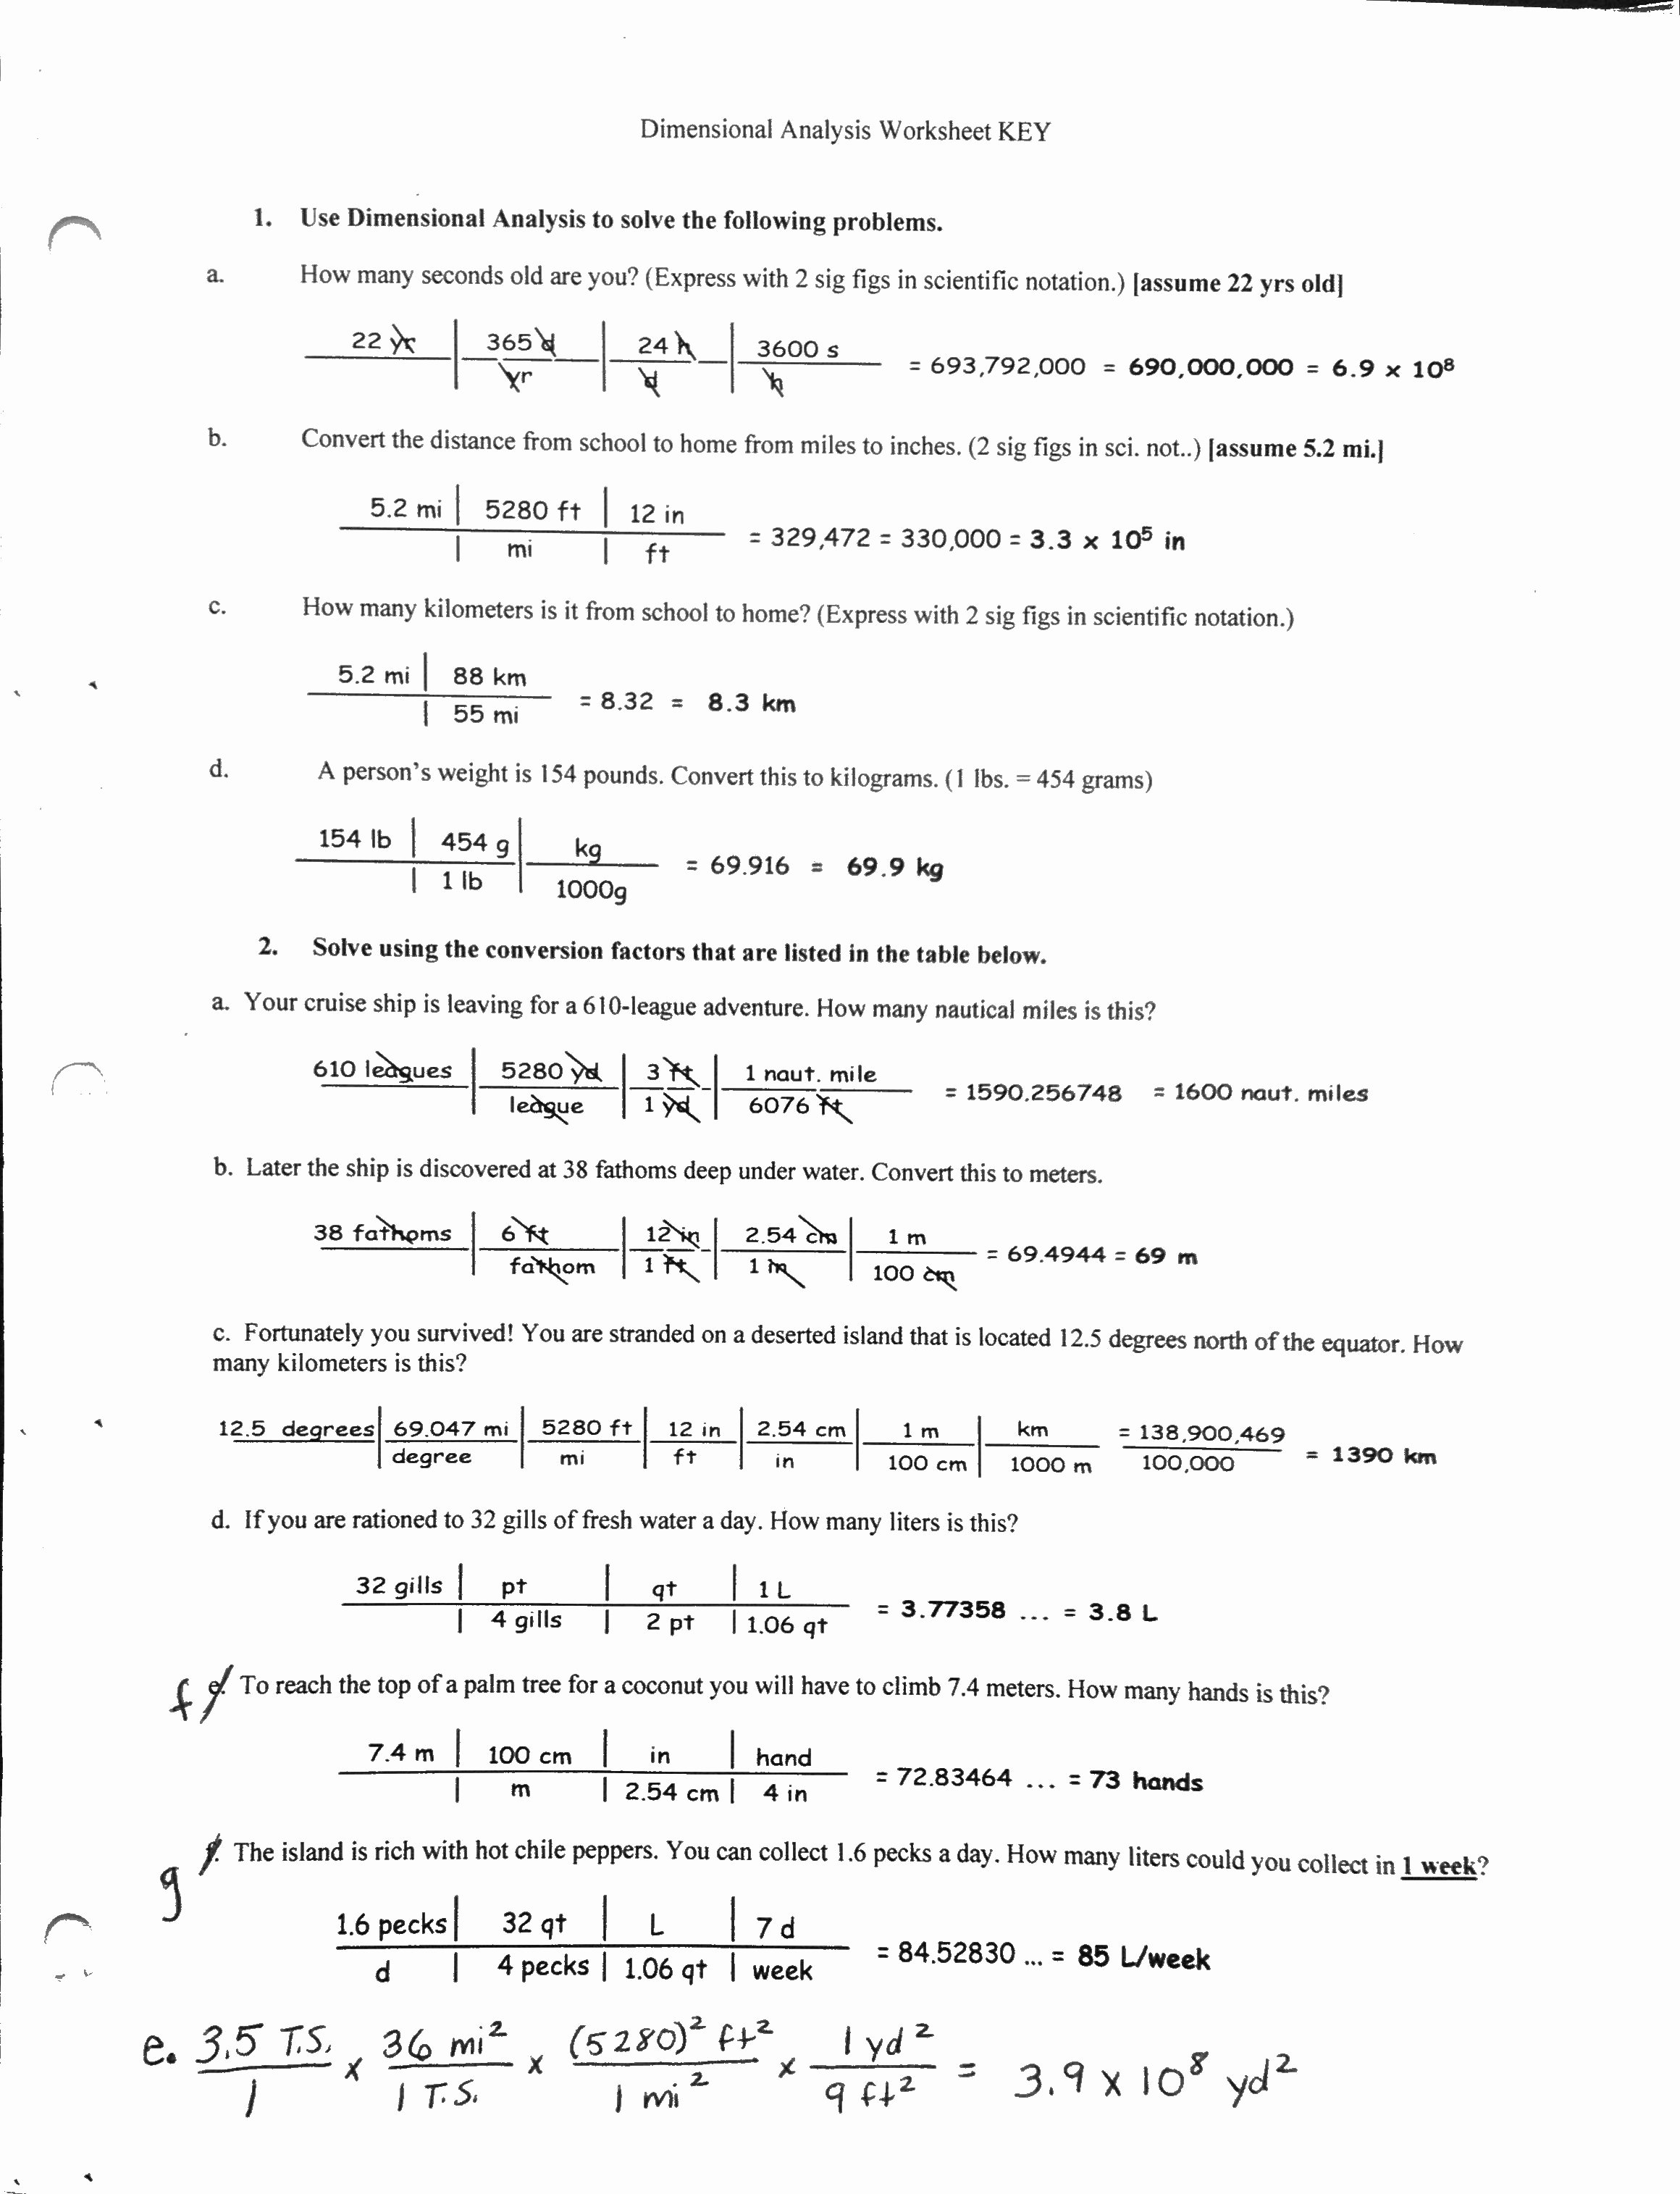 Dimensional Analysis Worksheet Answer Key Inspirational Scientific Notation Practice Worksheet Doc